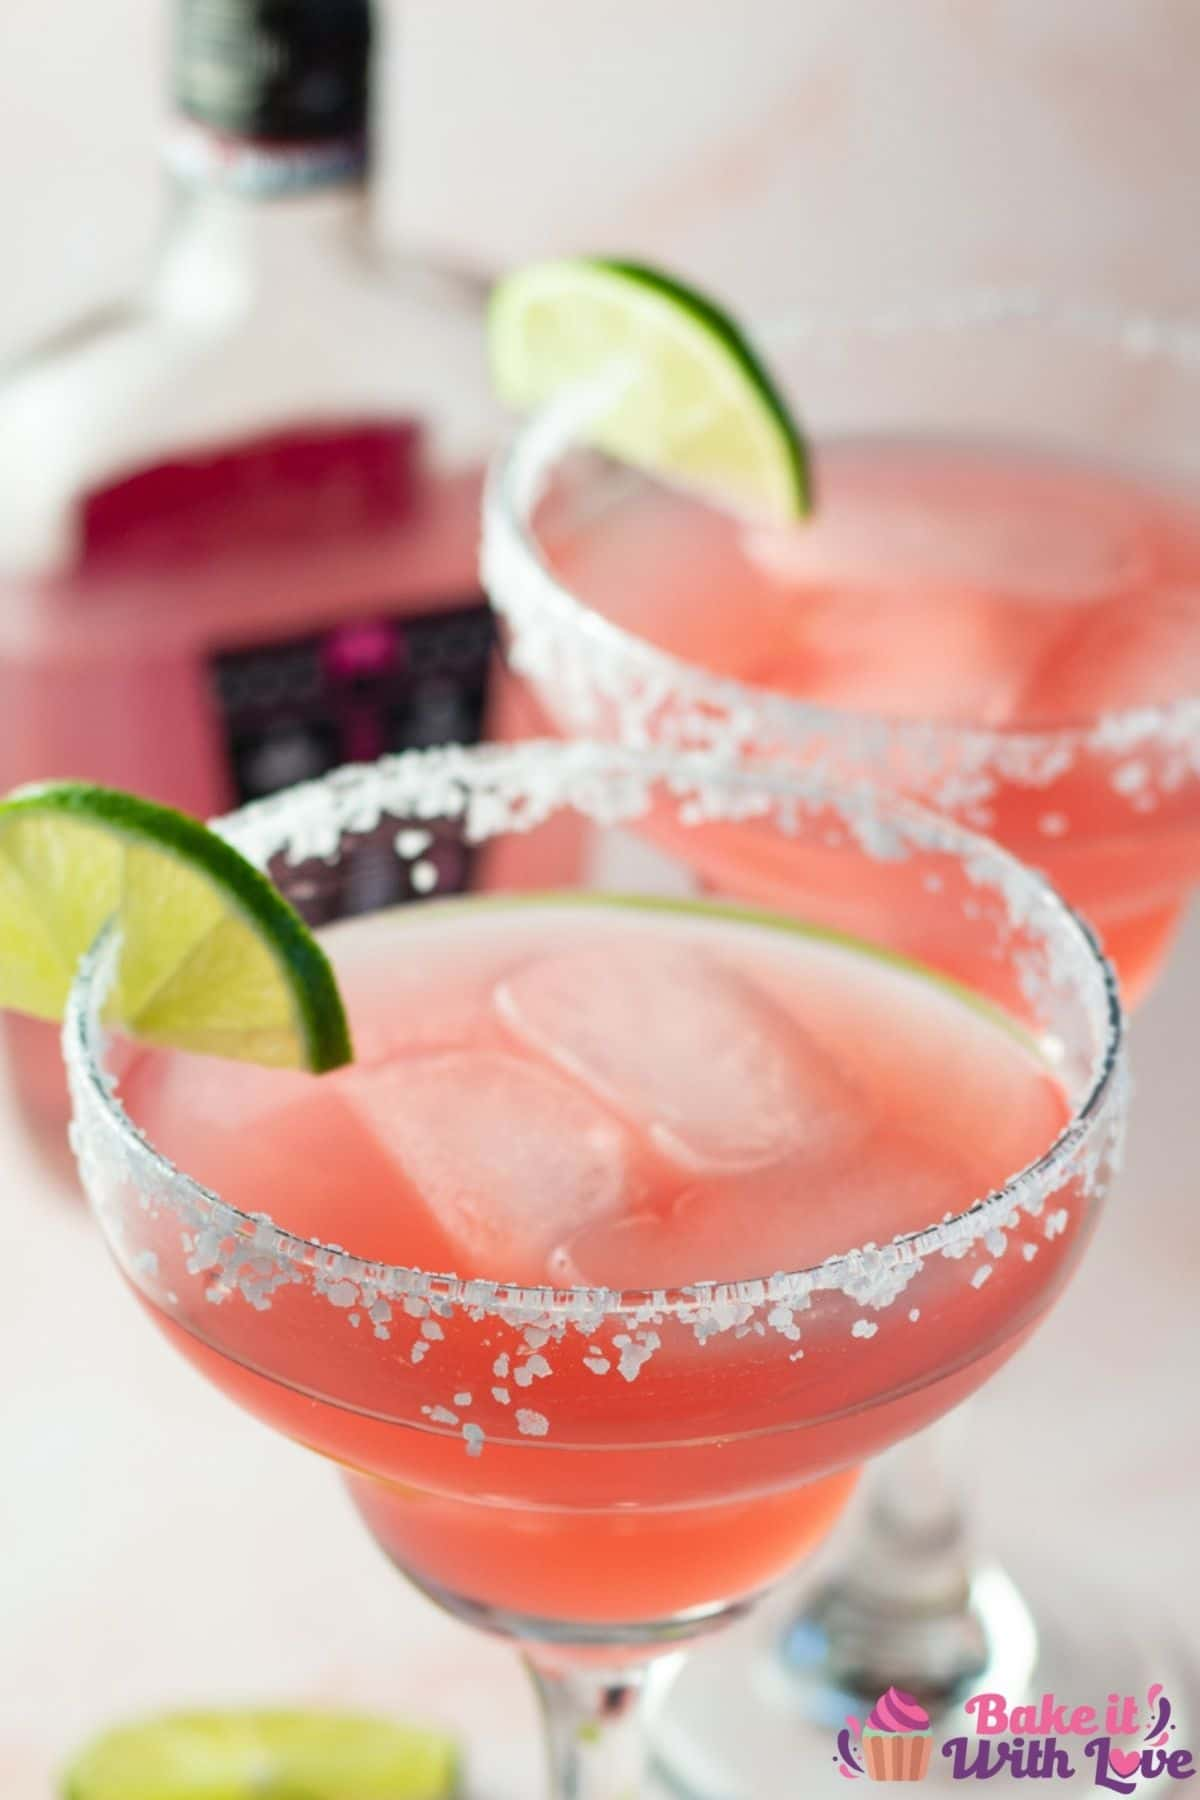 Pink vodka margaritas with Pink Whitney bottle in background.